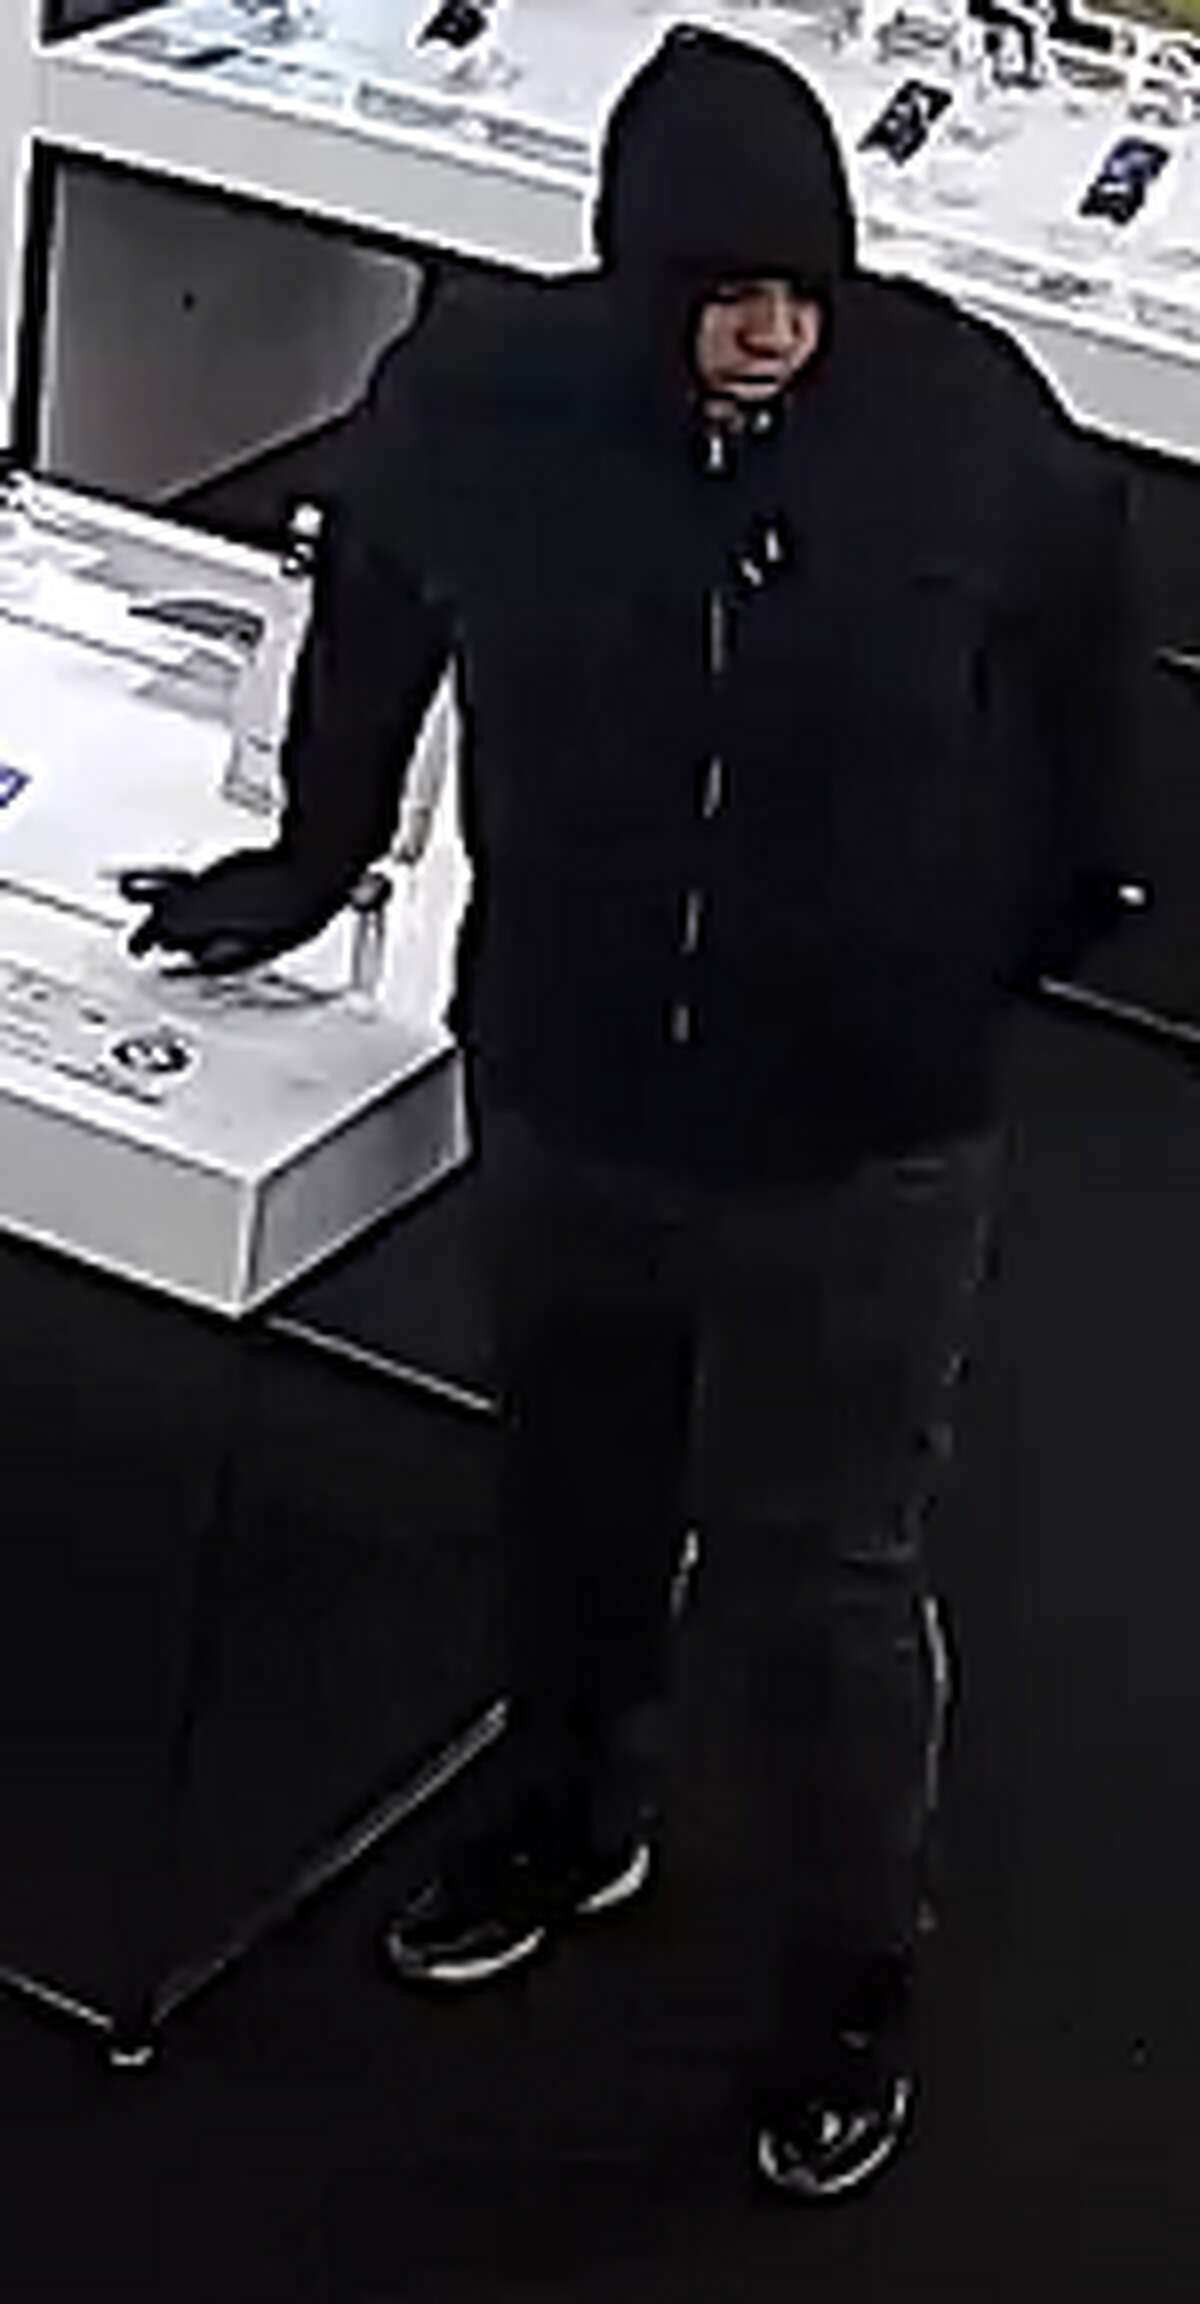 The Pasadena Police Department is searching for five men they said forced a cellphone store employee at gunpoint to open a safe and then made off with store merchandise.